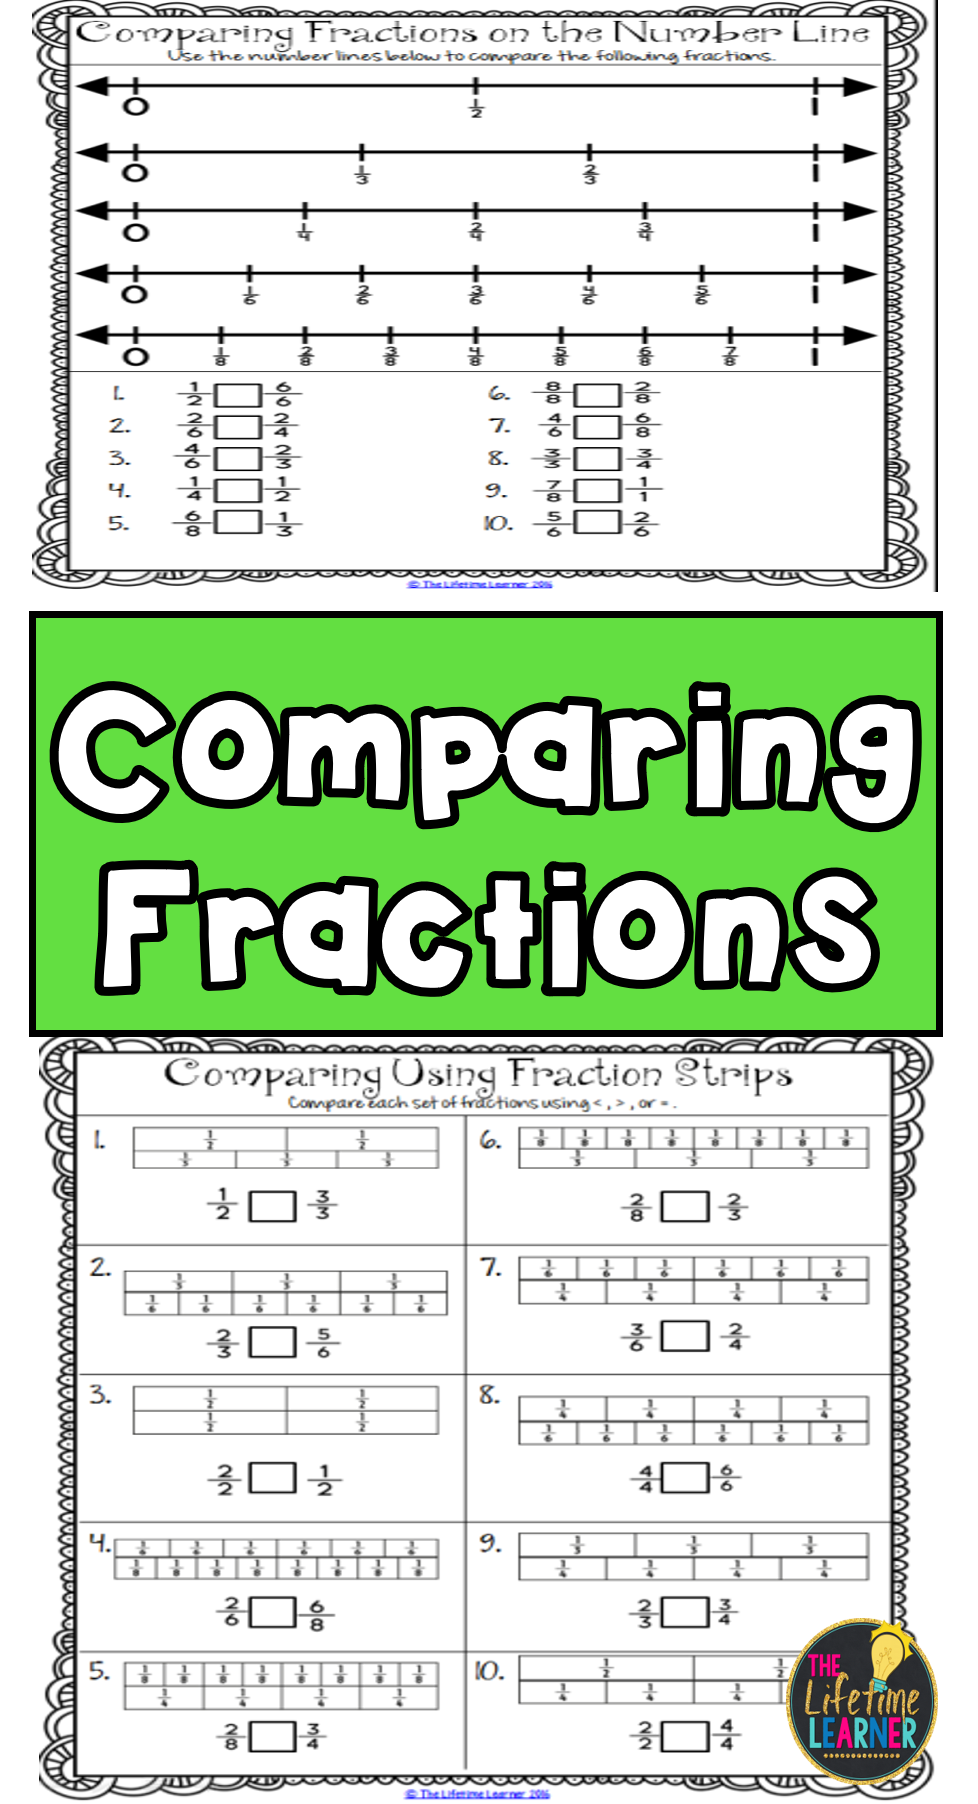 Comparing Fractions - Fraction Worksheets Activities Games ...